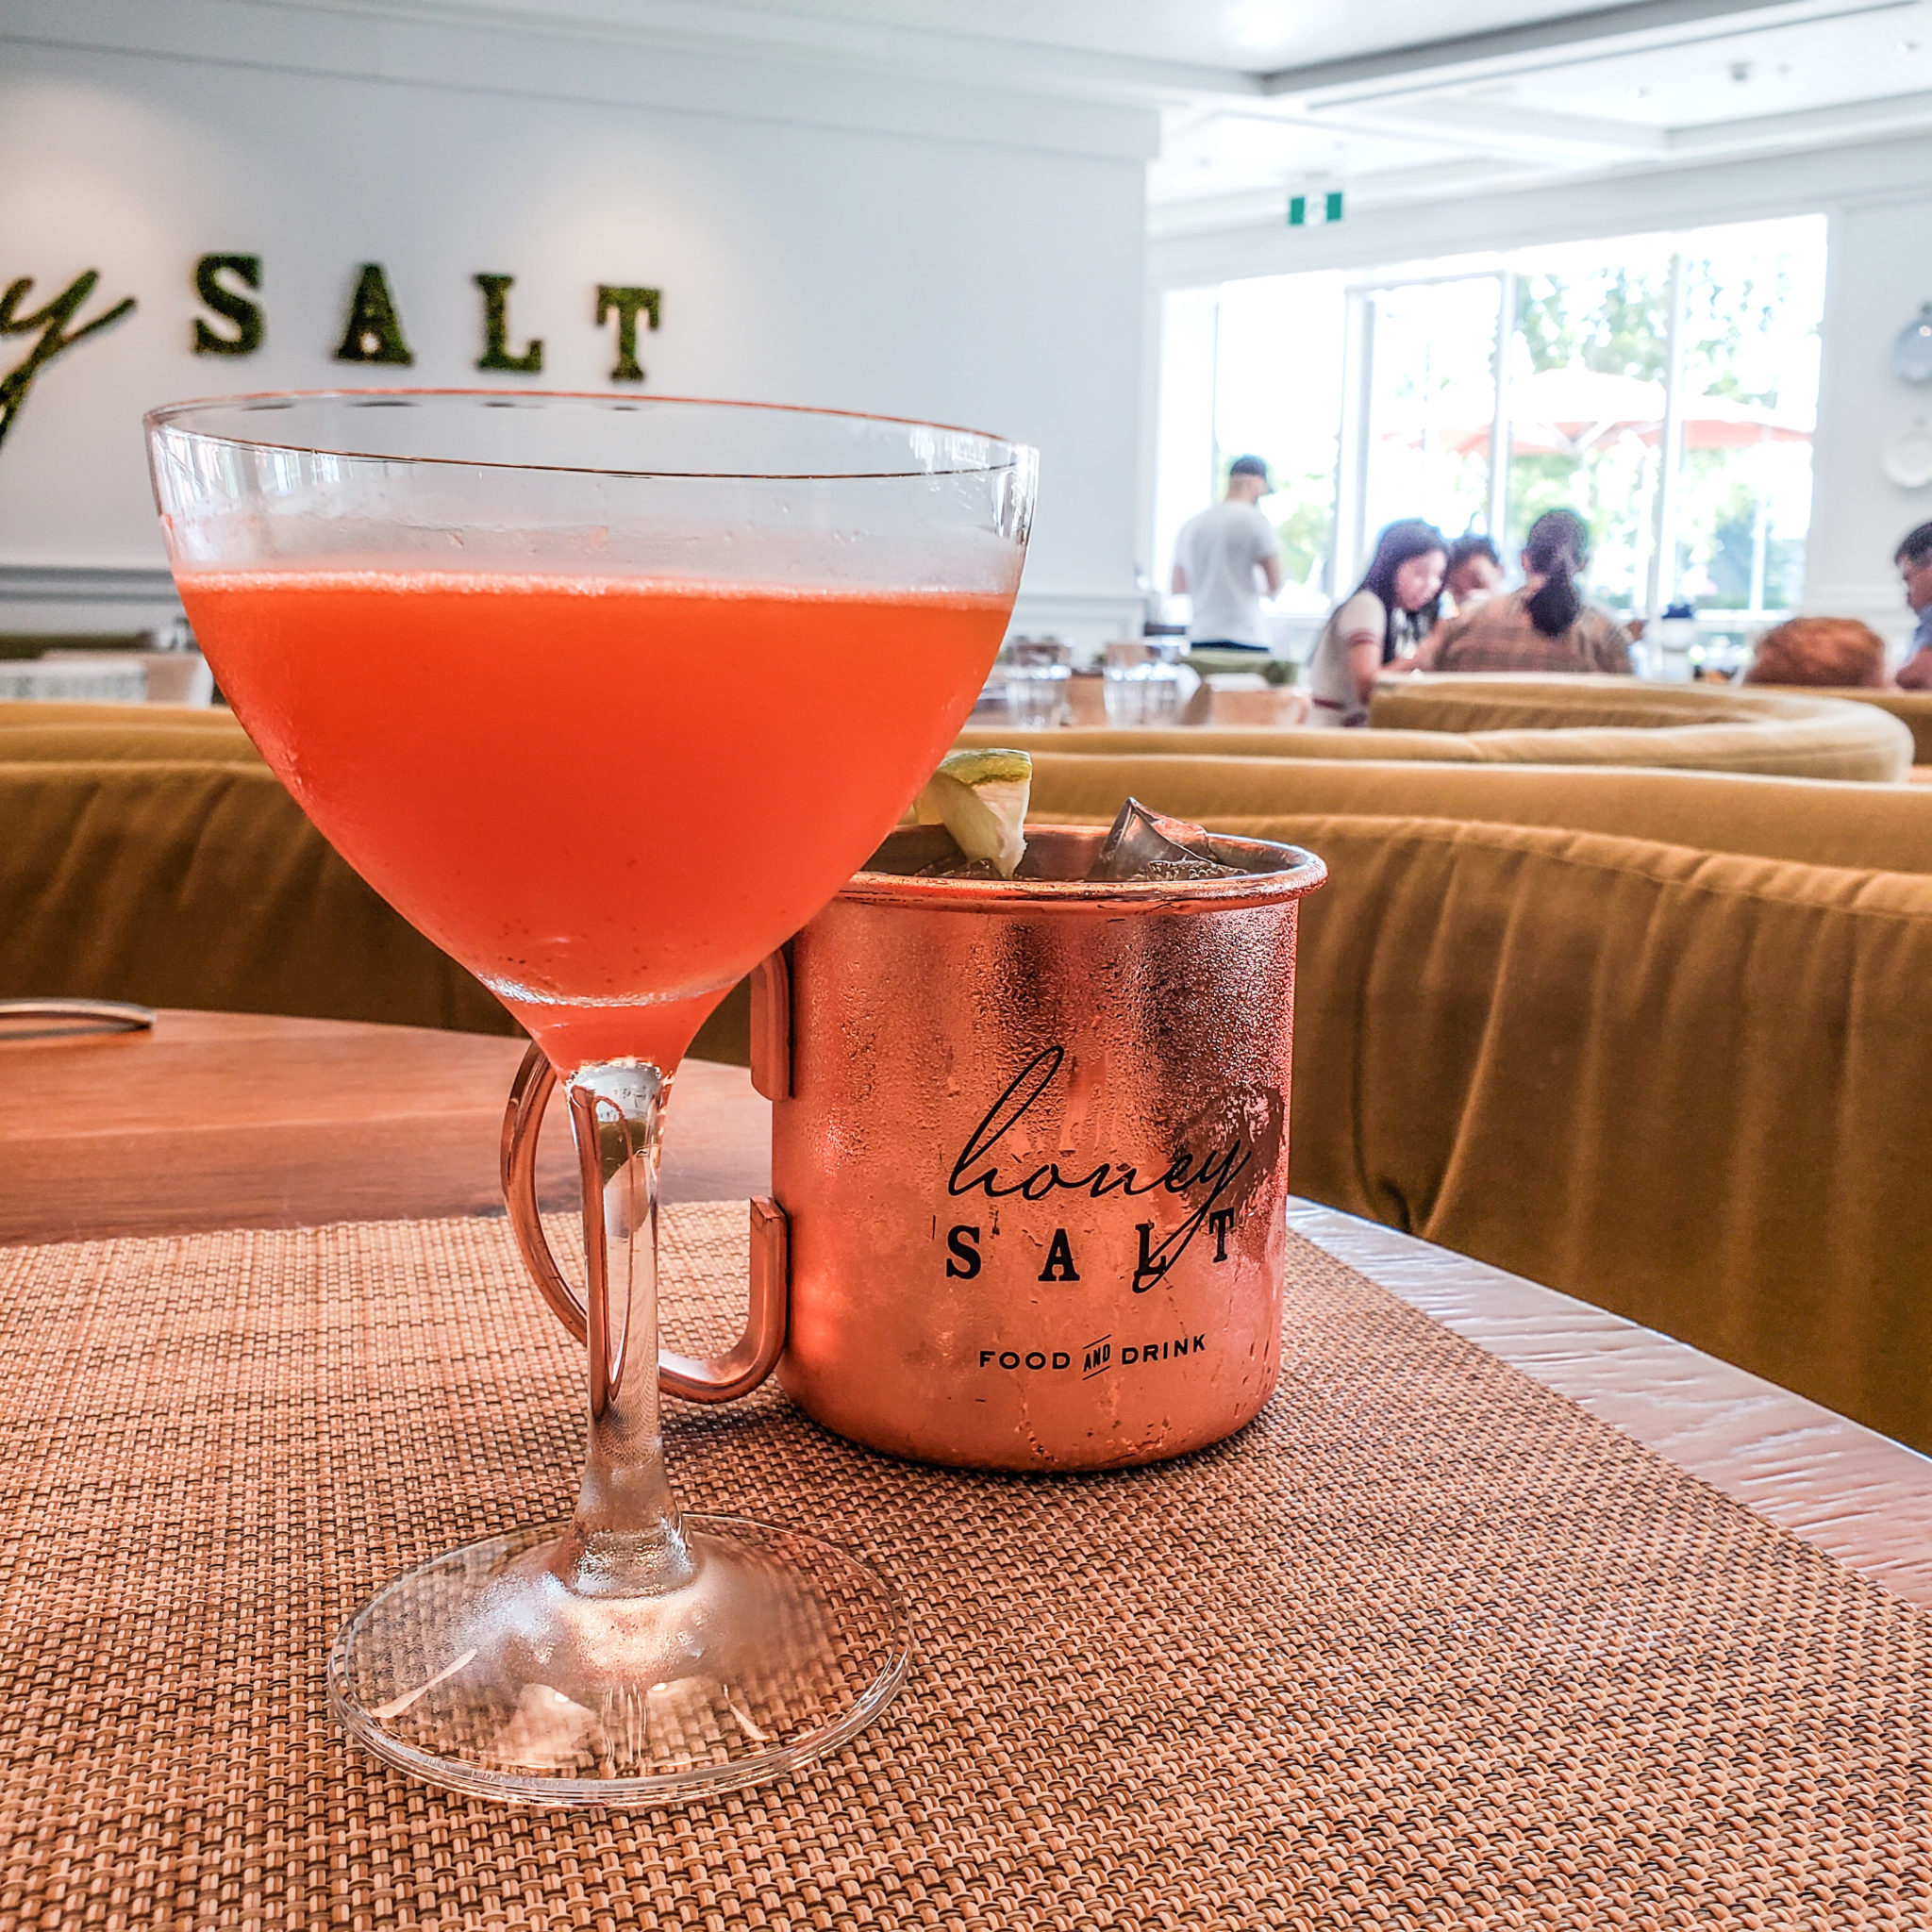 Vancouver - Canada - British Columbia - Parq Hotel - Honey Salt - Brunch - Sultan Sandur - Cocktail